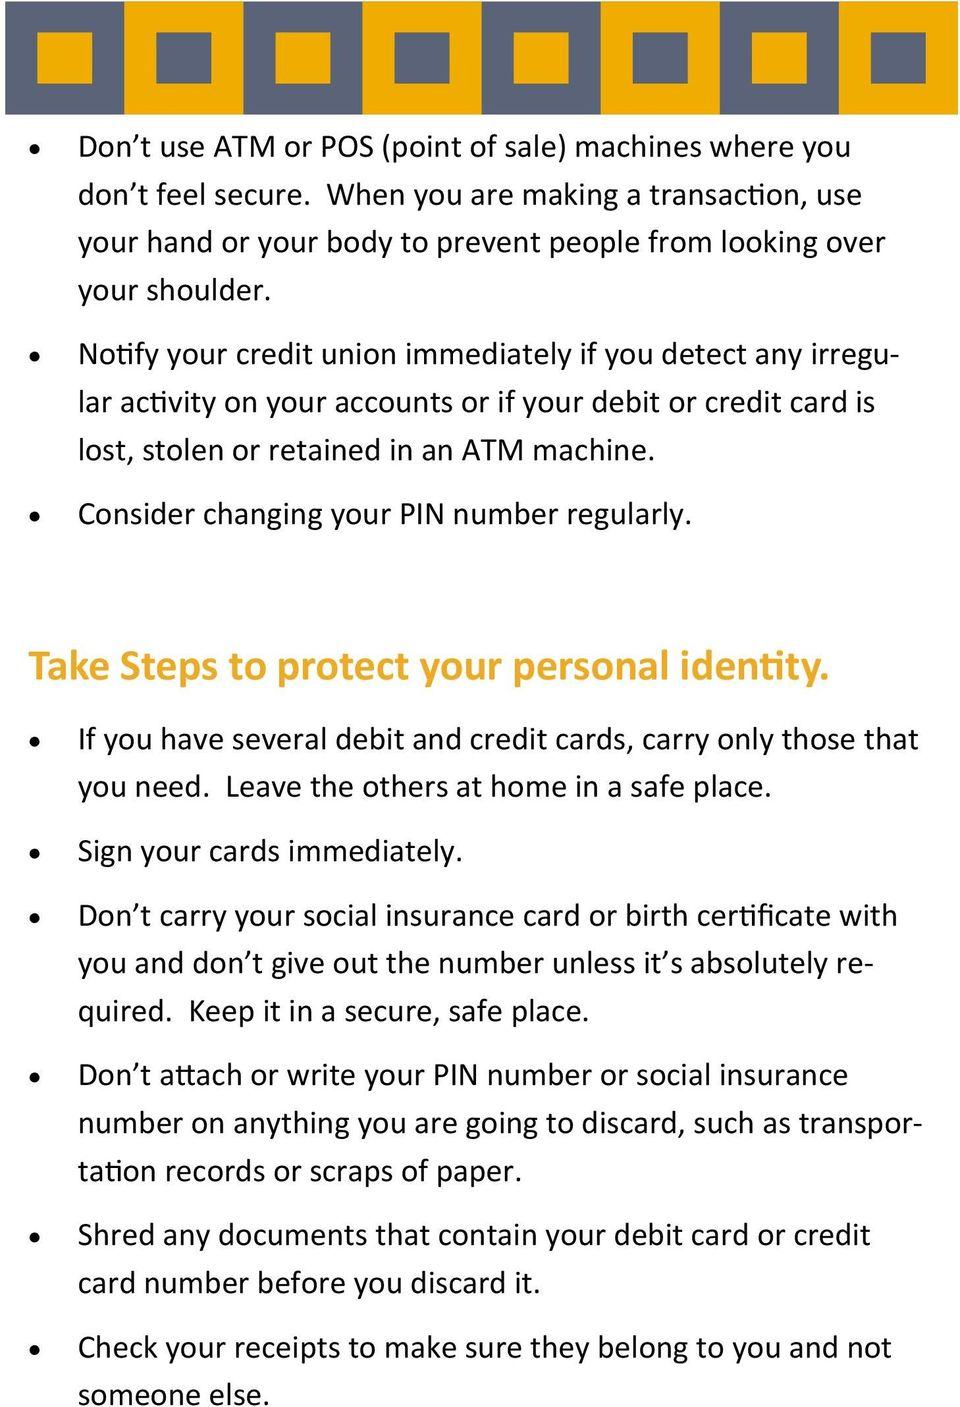 Consider changing your PIN number regularly. Take Steps to protect your personal iden ty. If you have several debit and credit cards, carry only those that you need.